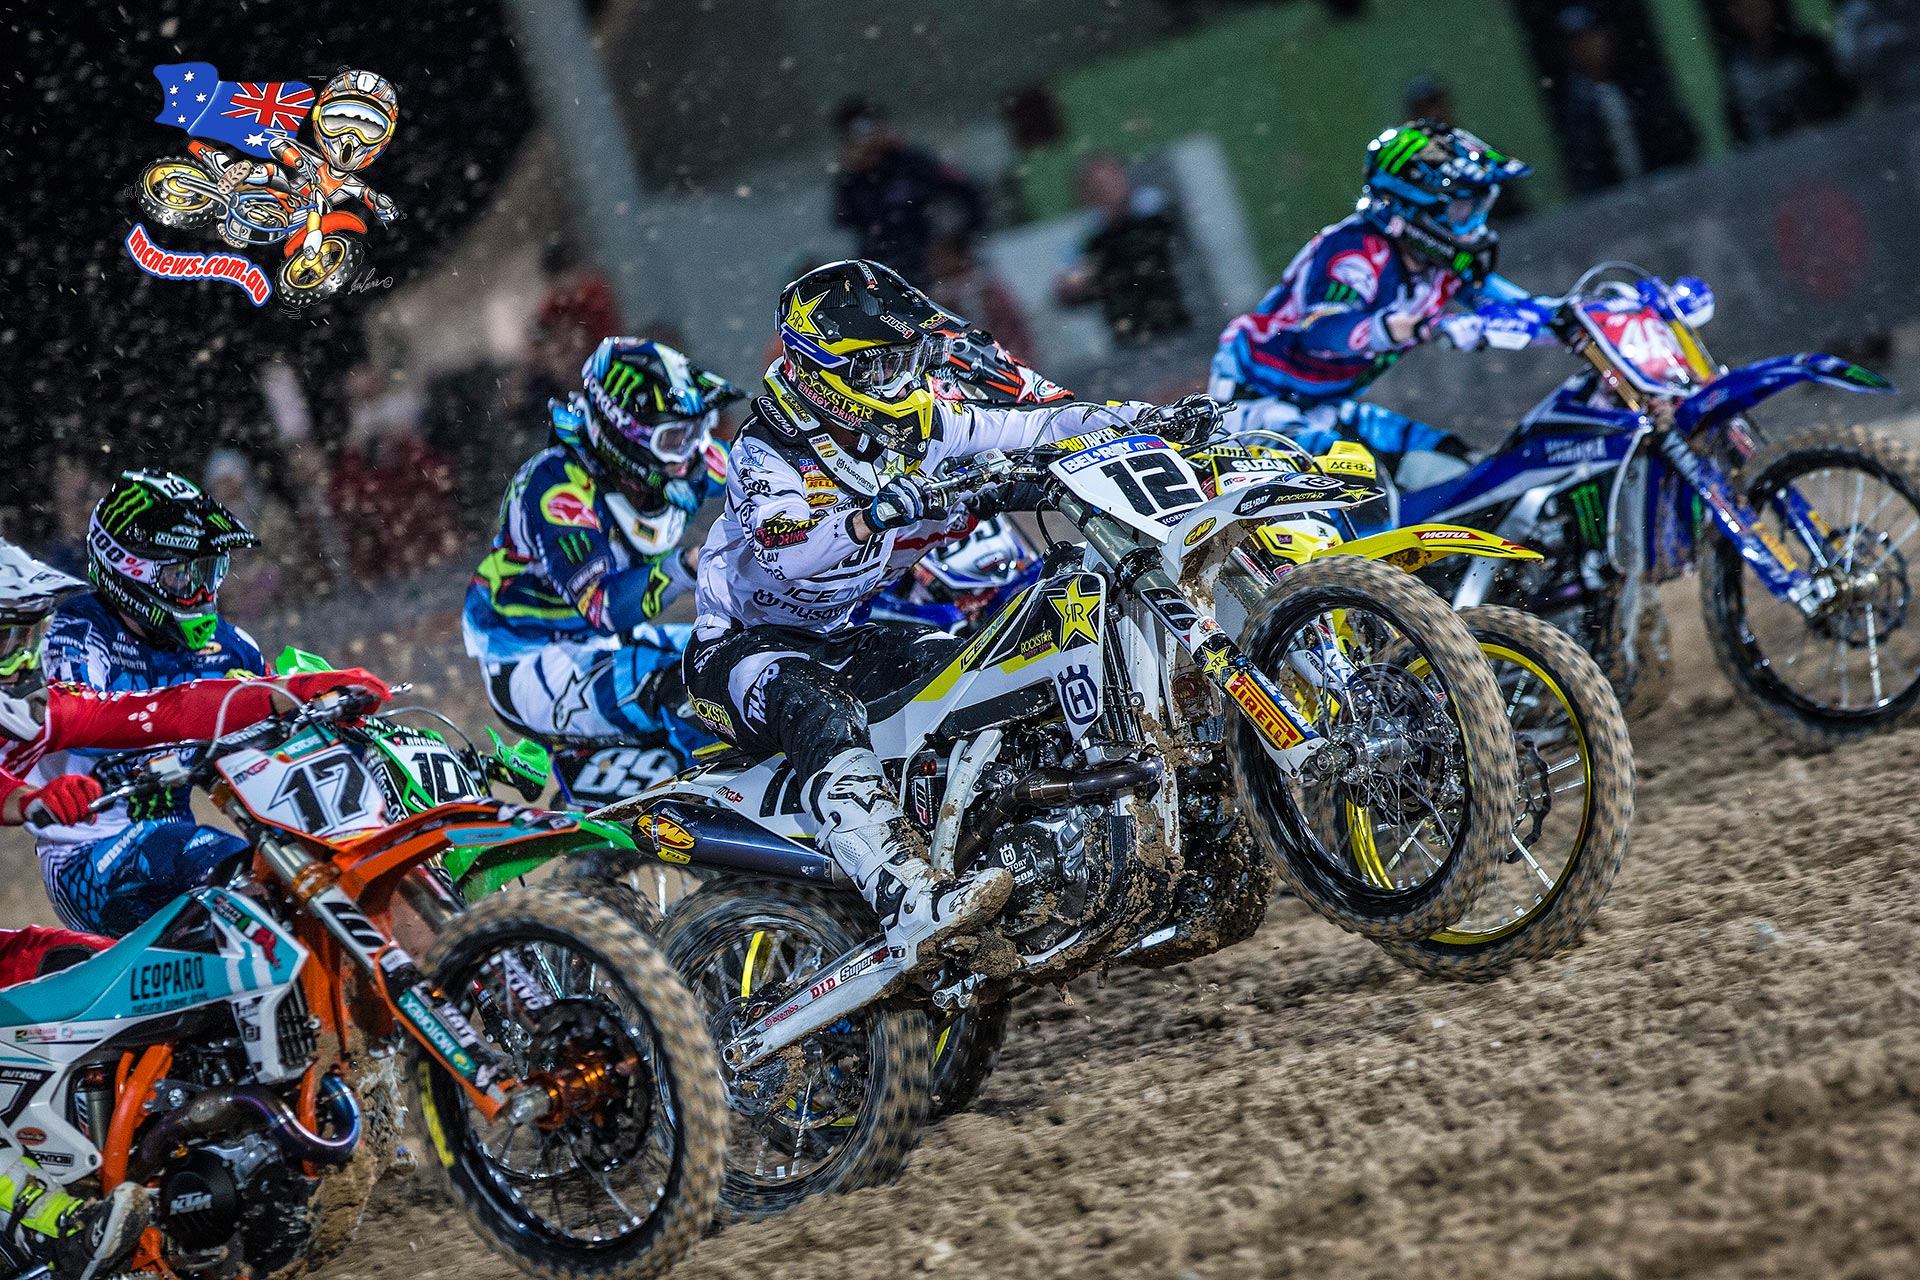 World MX 2016 - Round One - Qatar - Max Nagl